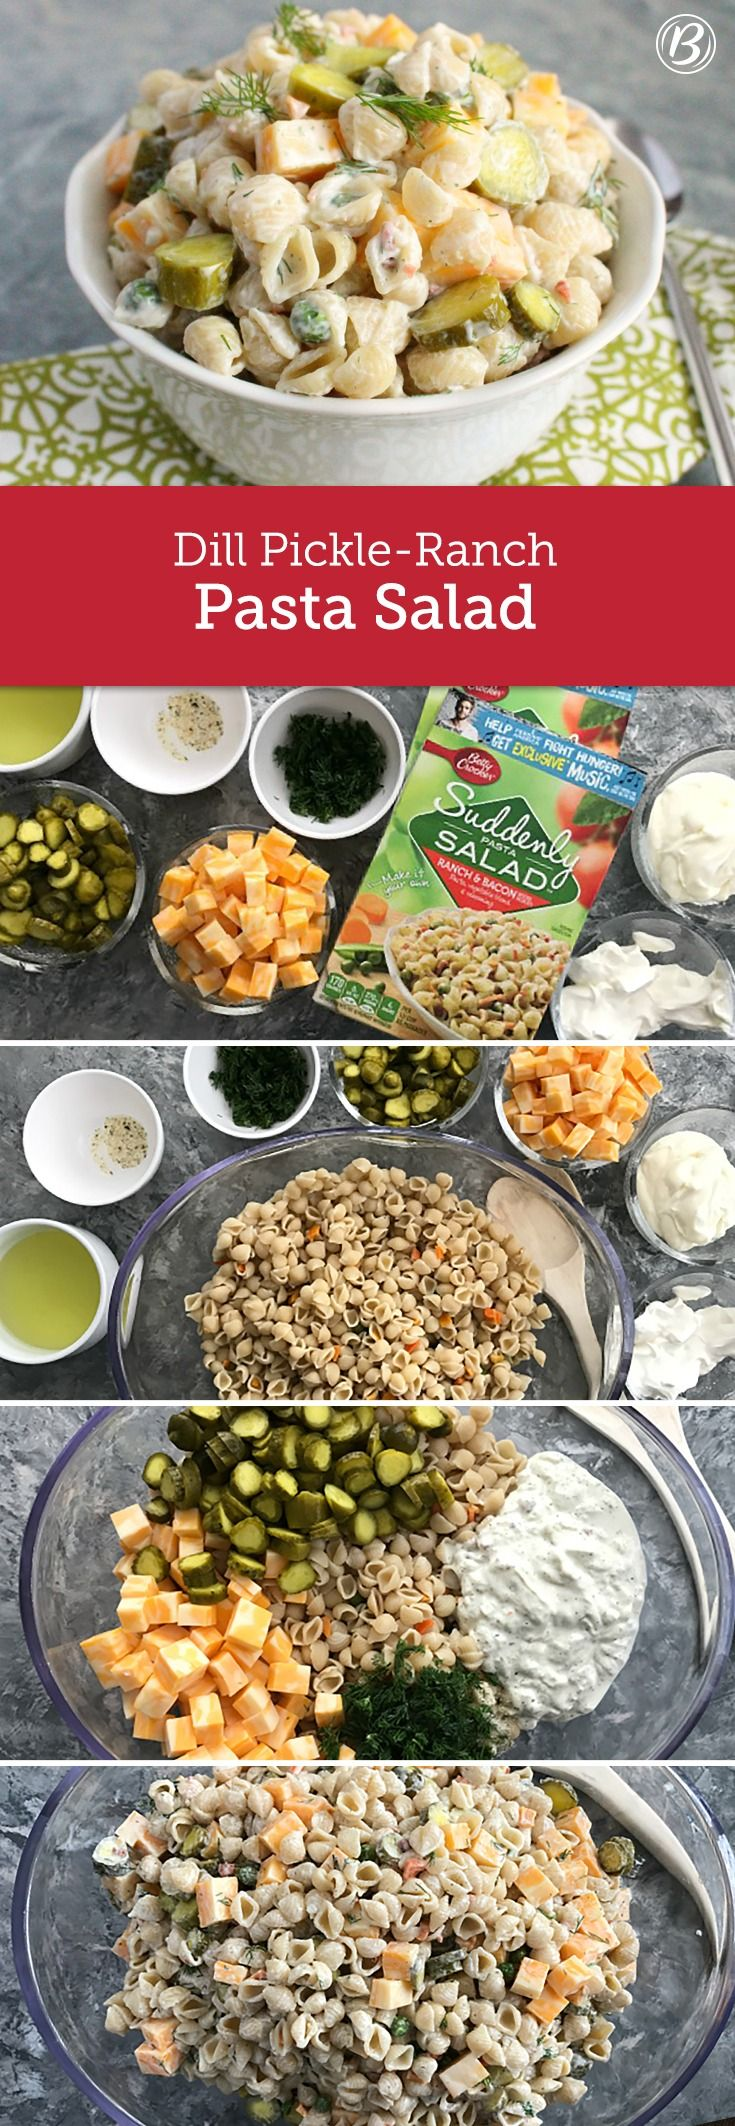 Your summer cookout will never be the same after you make this pasta that packs a dill pickle punch and comes together in three simple steps. Try using the extra seasoning mix to jazz up a chicken or tuna salad.